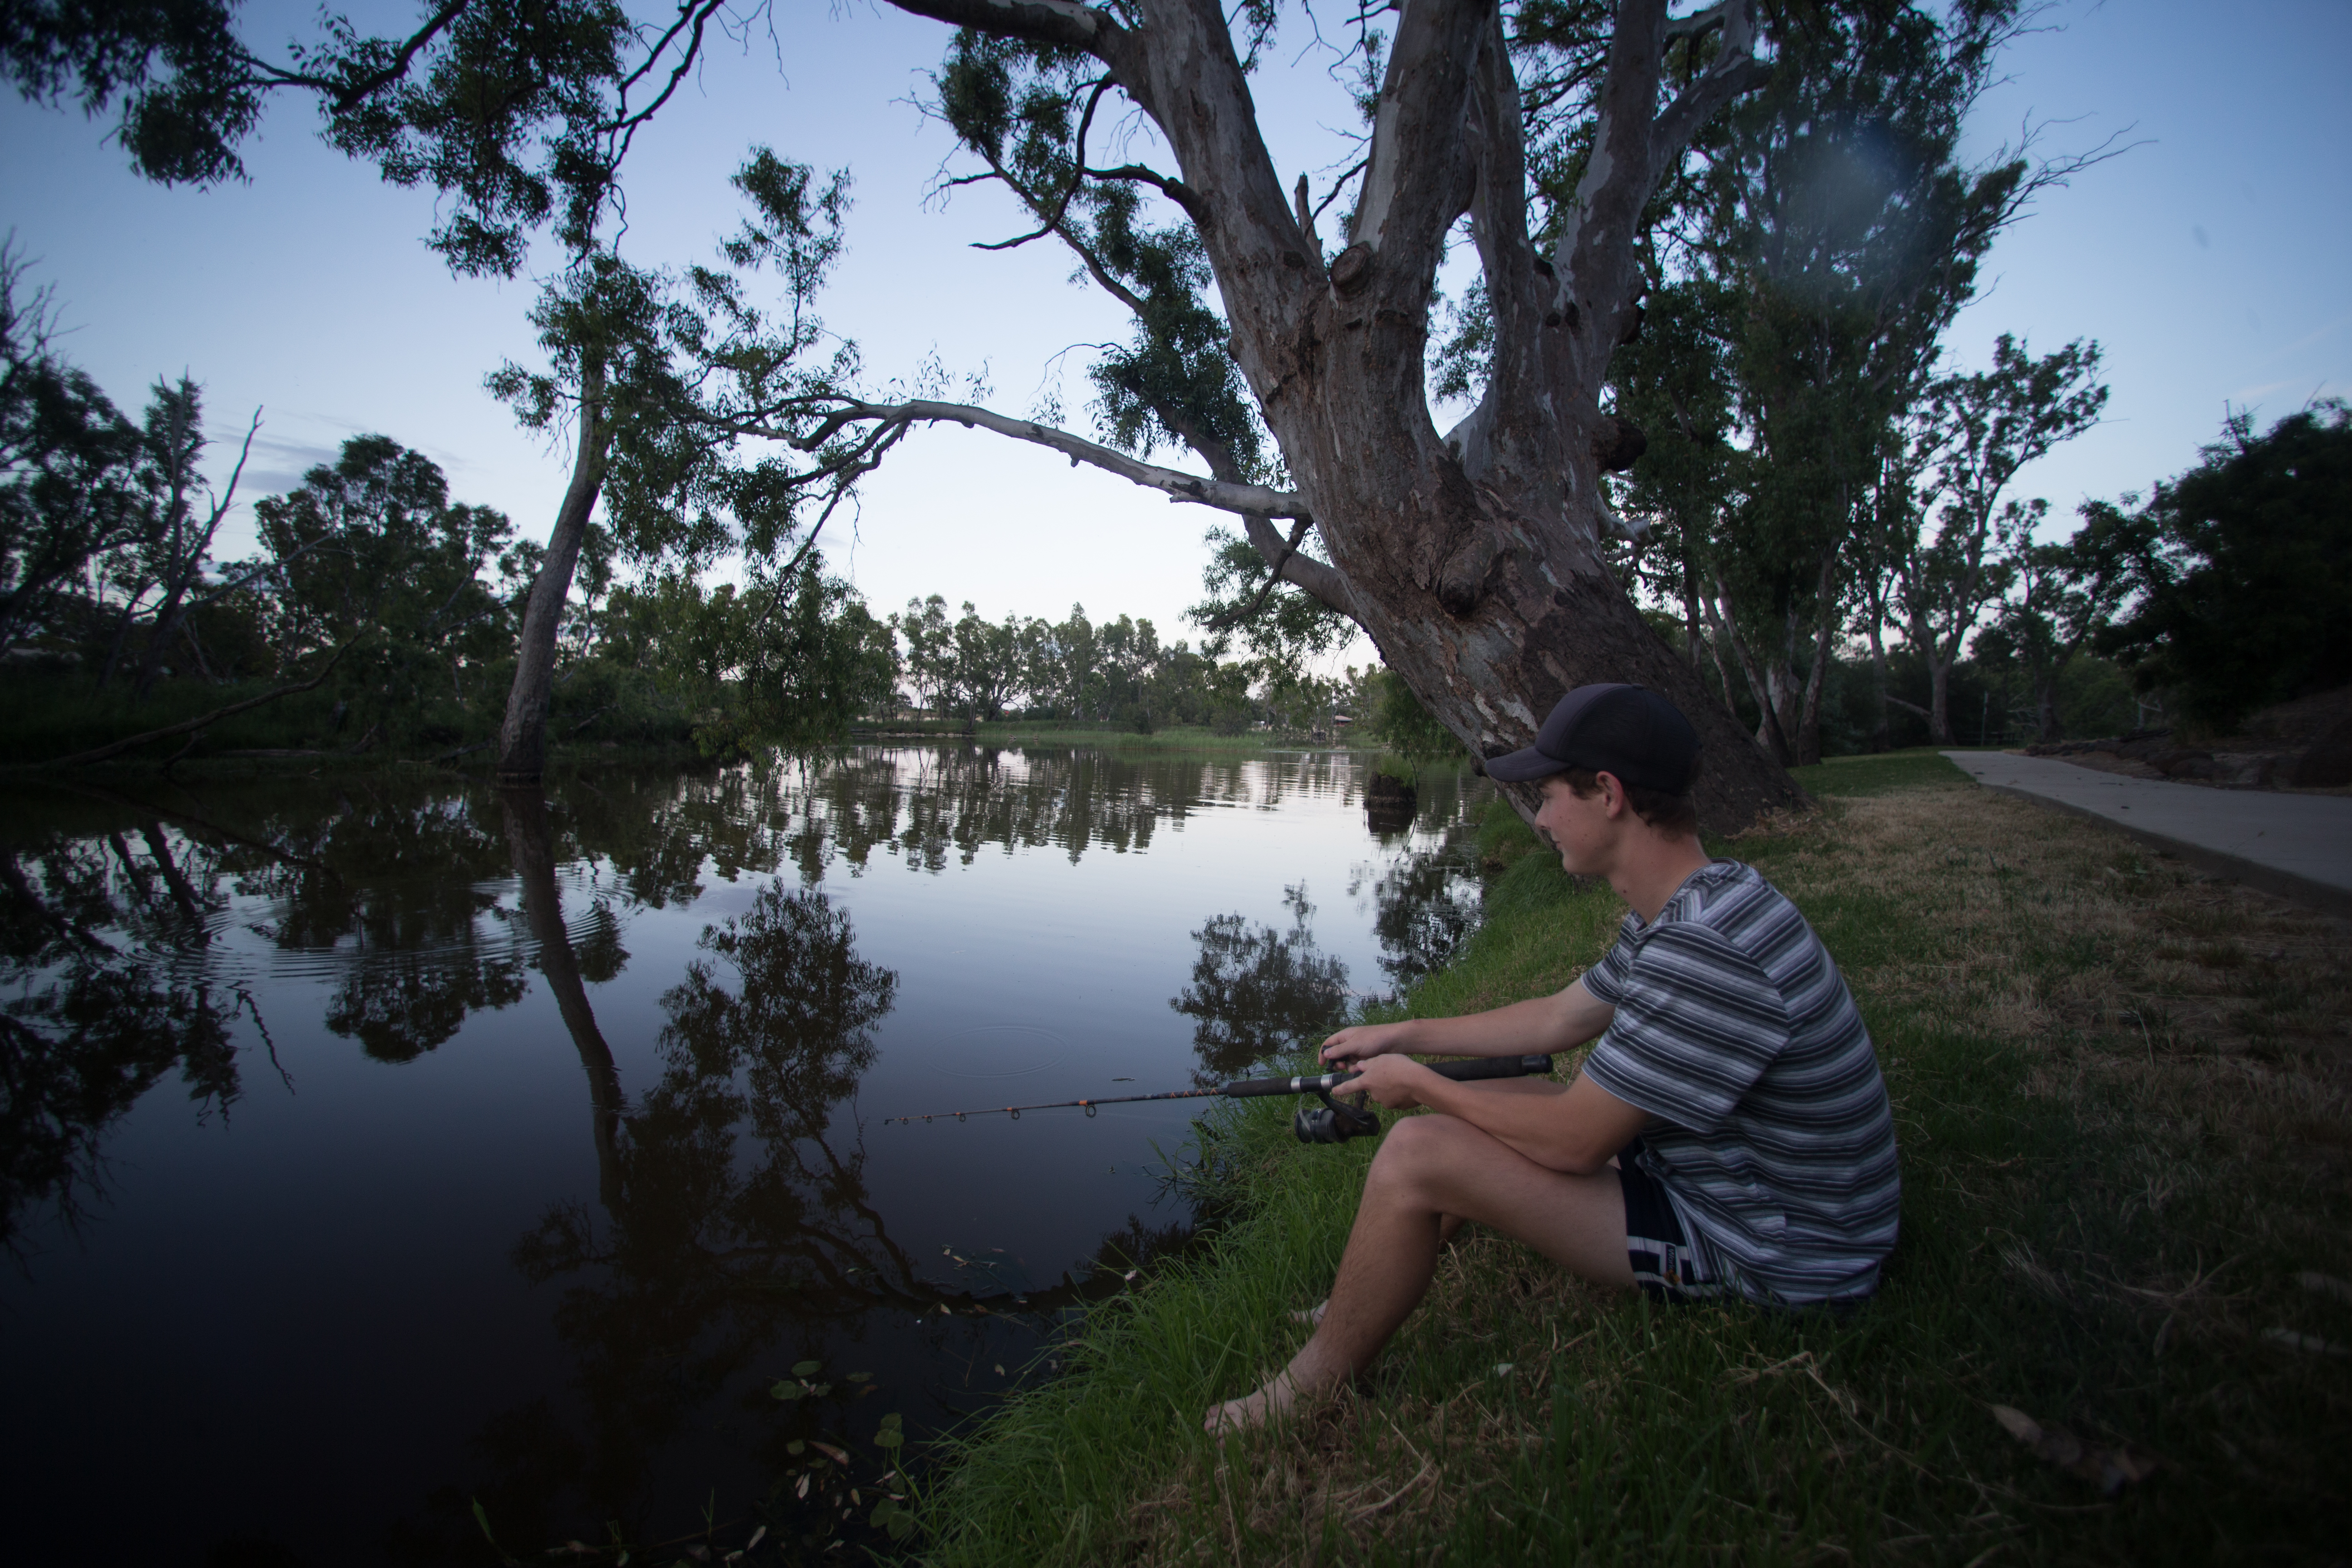 Fishing from the banks of the Loddon River